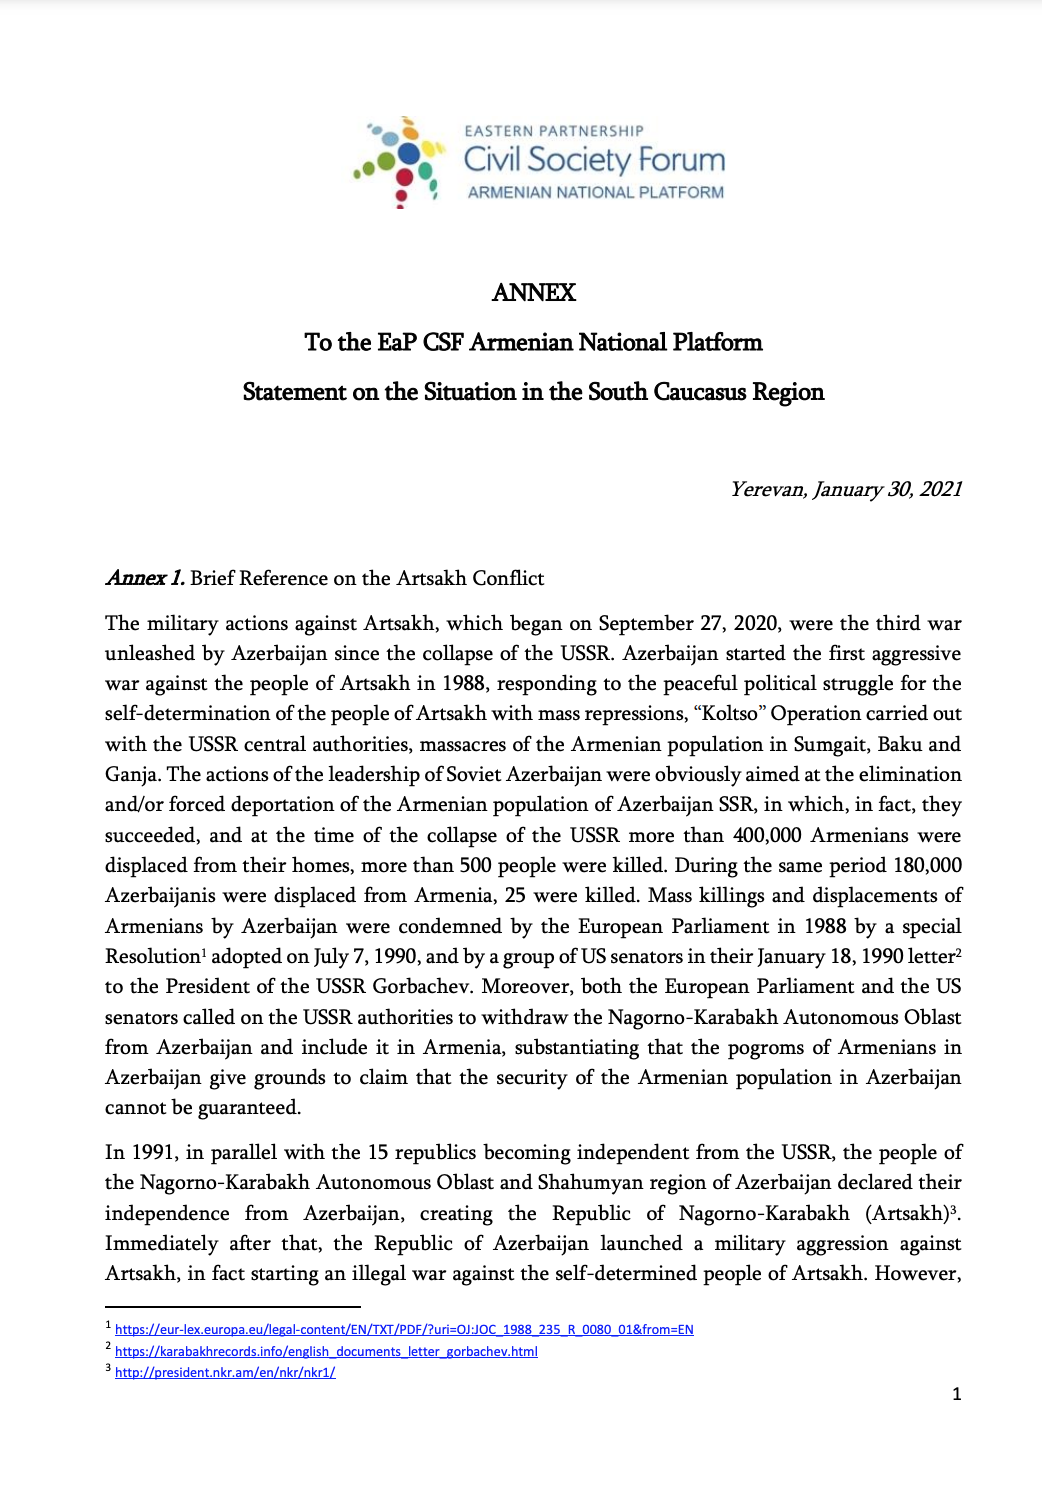 EaP CSF Armenian National Platform Statement on the Situation in the South Caucasus Region